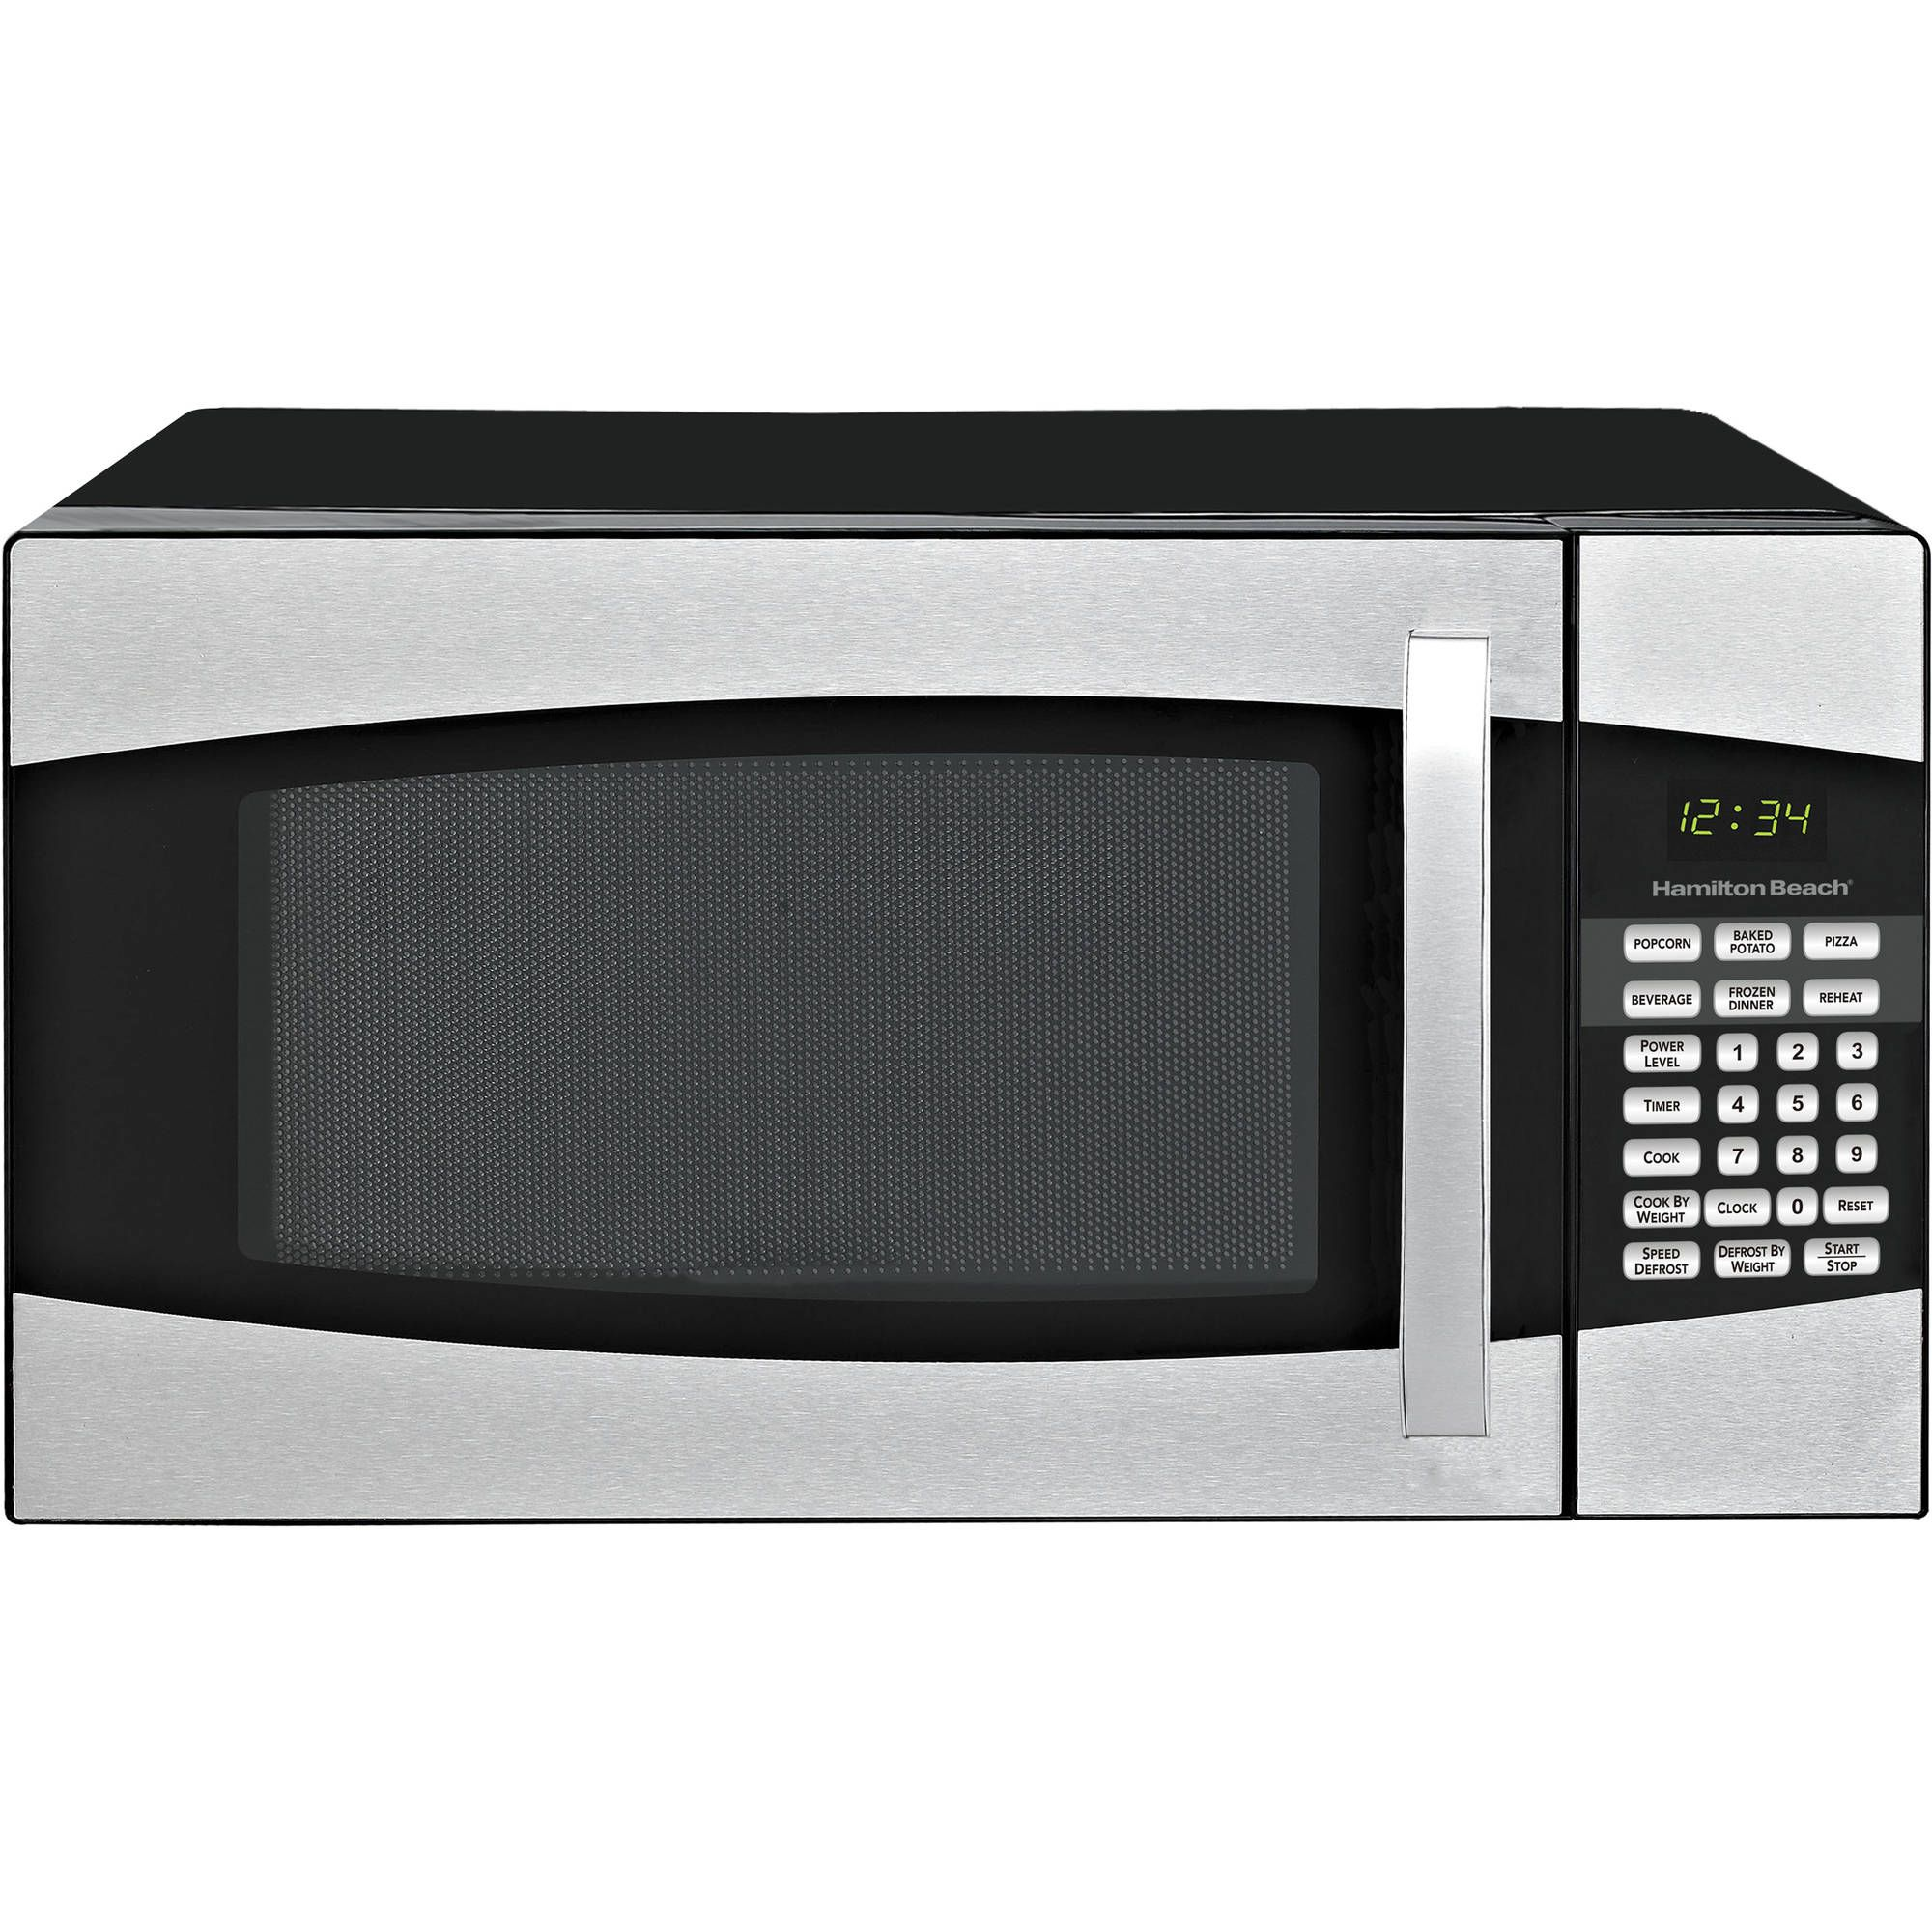 Hamilton Beach 0 9 Cu Ft Microwave Oven Black Bargain